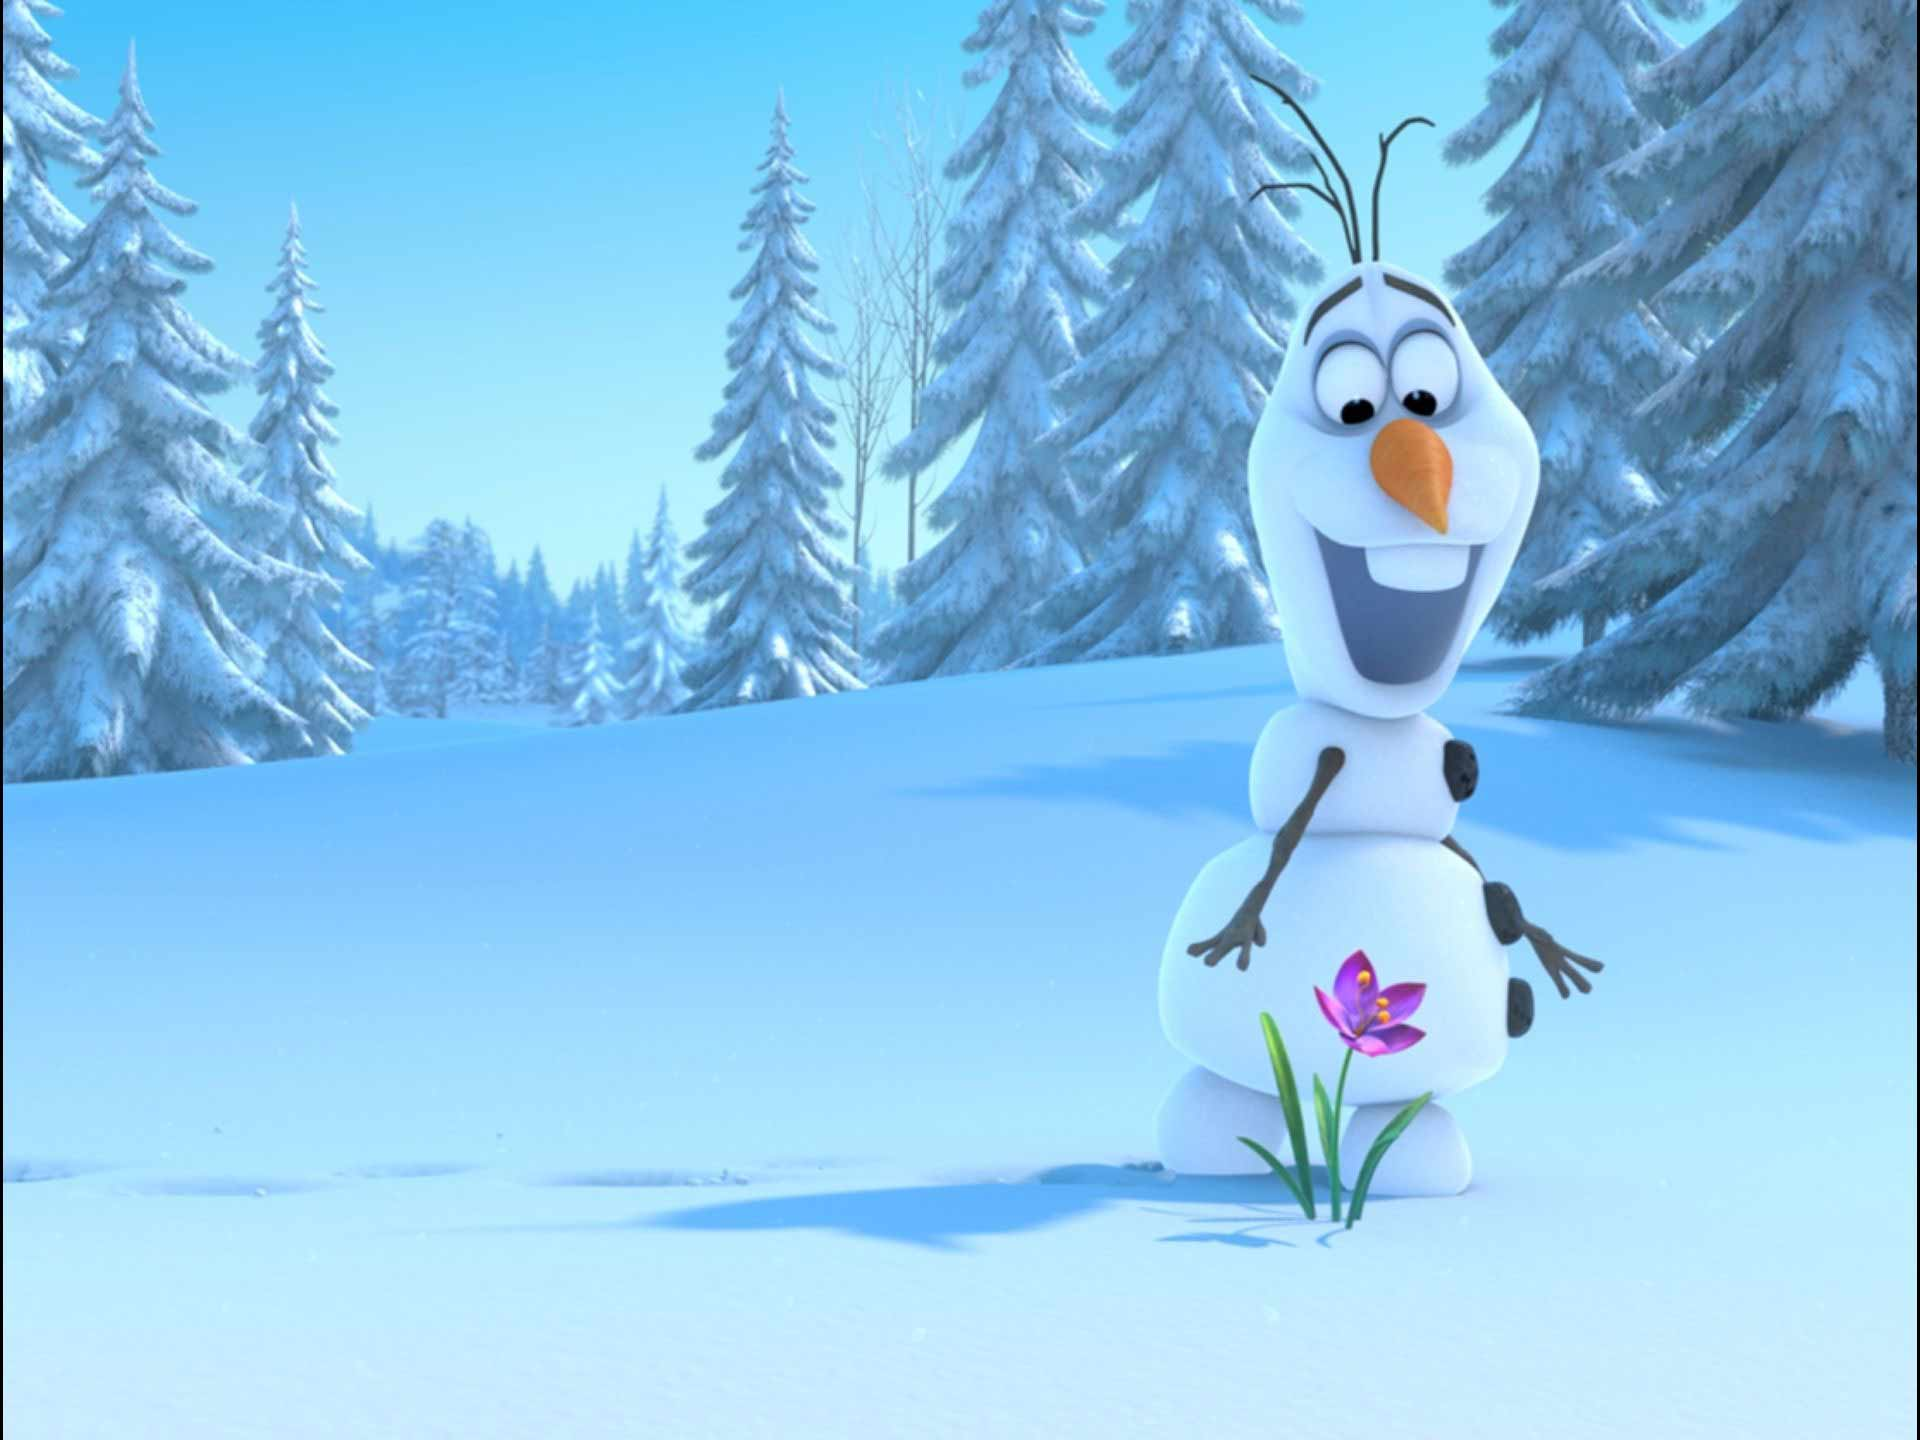 backgrounds anna frozen movie wallpapers free disney movie wallpapers 1920x1440